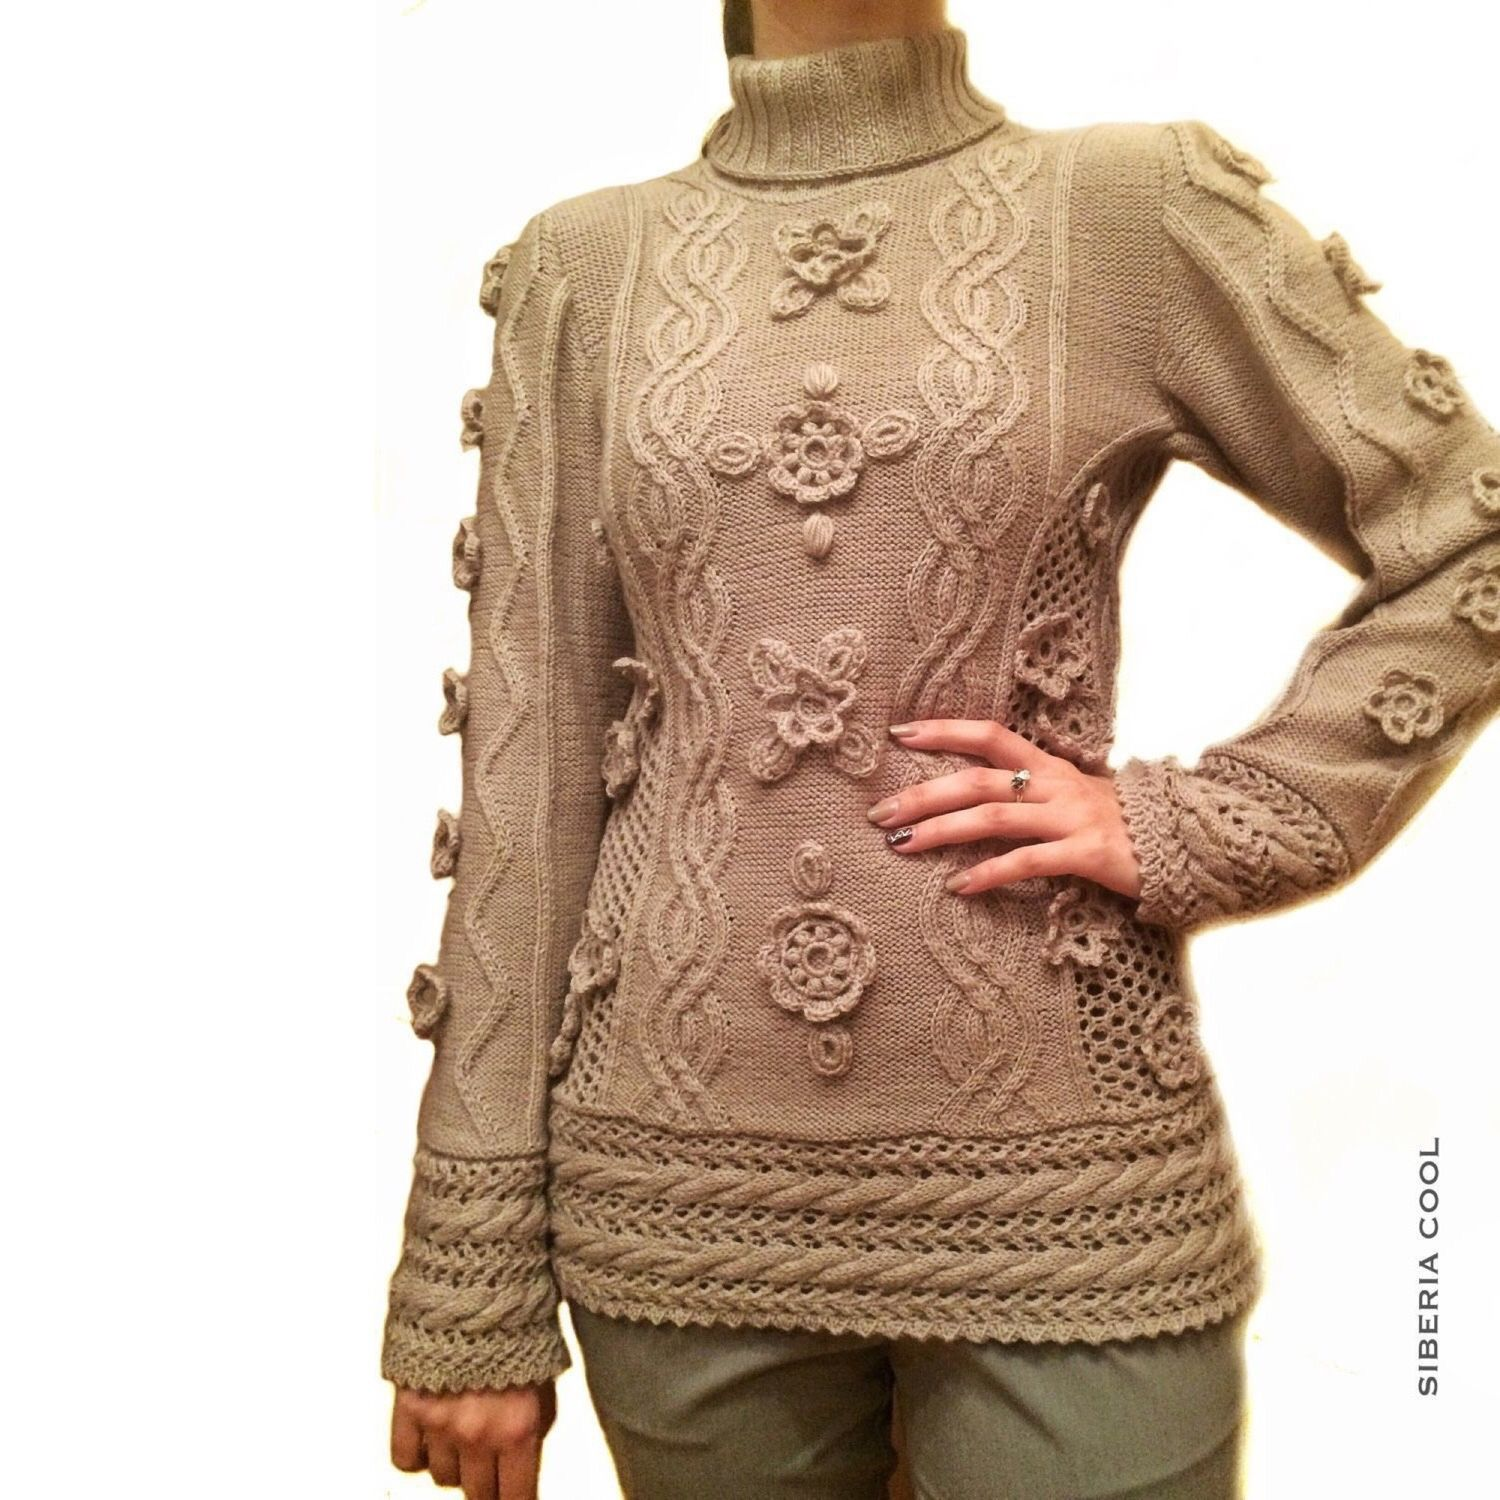 Sweater female knitted spokes Floral openwork, Merino wool, Sweaters, Voronezh,  Фото №1